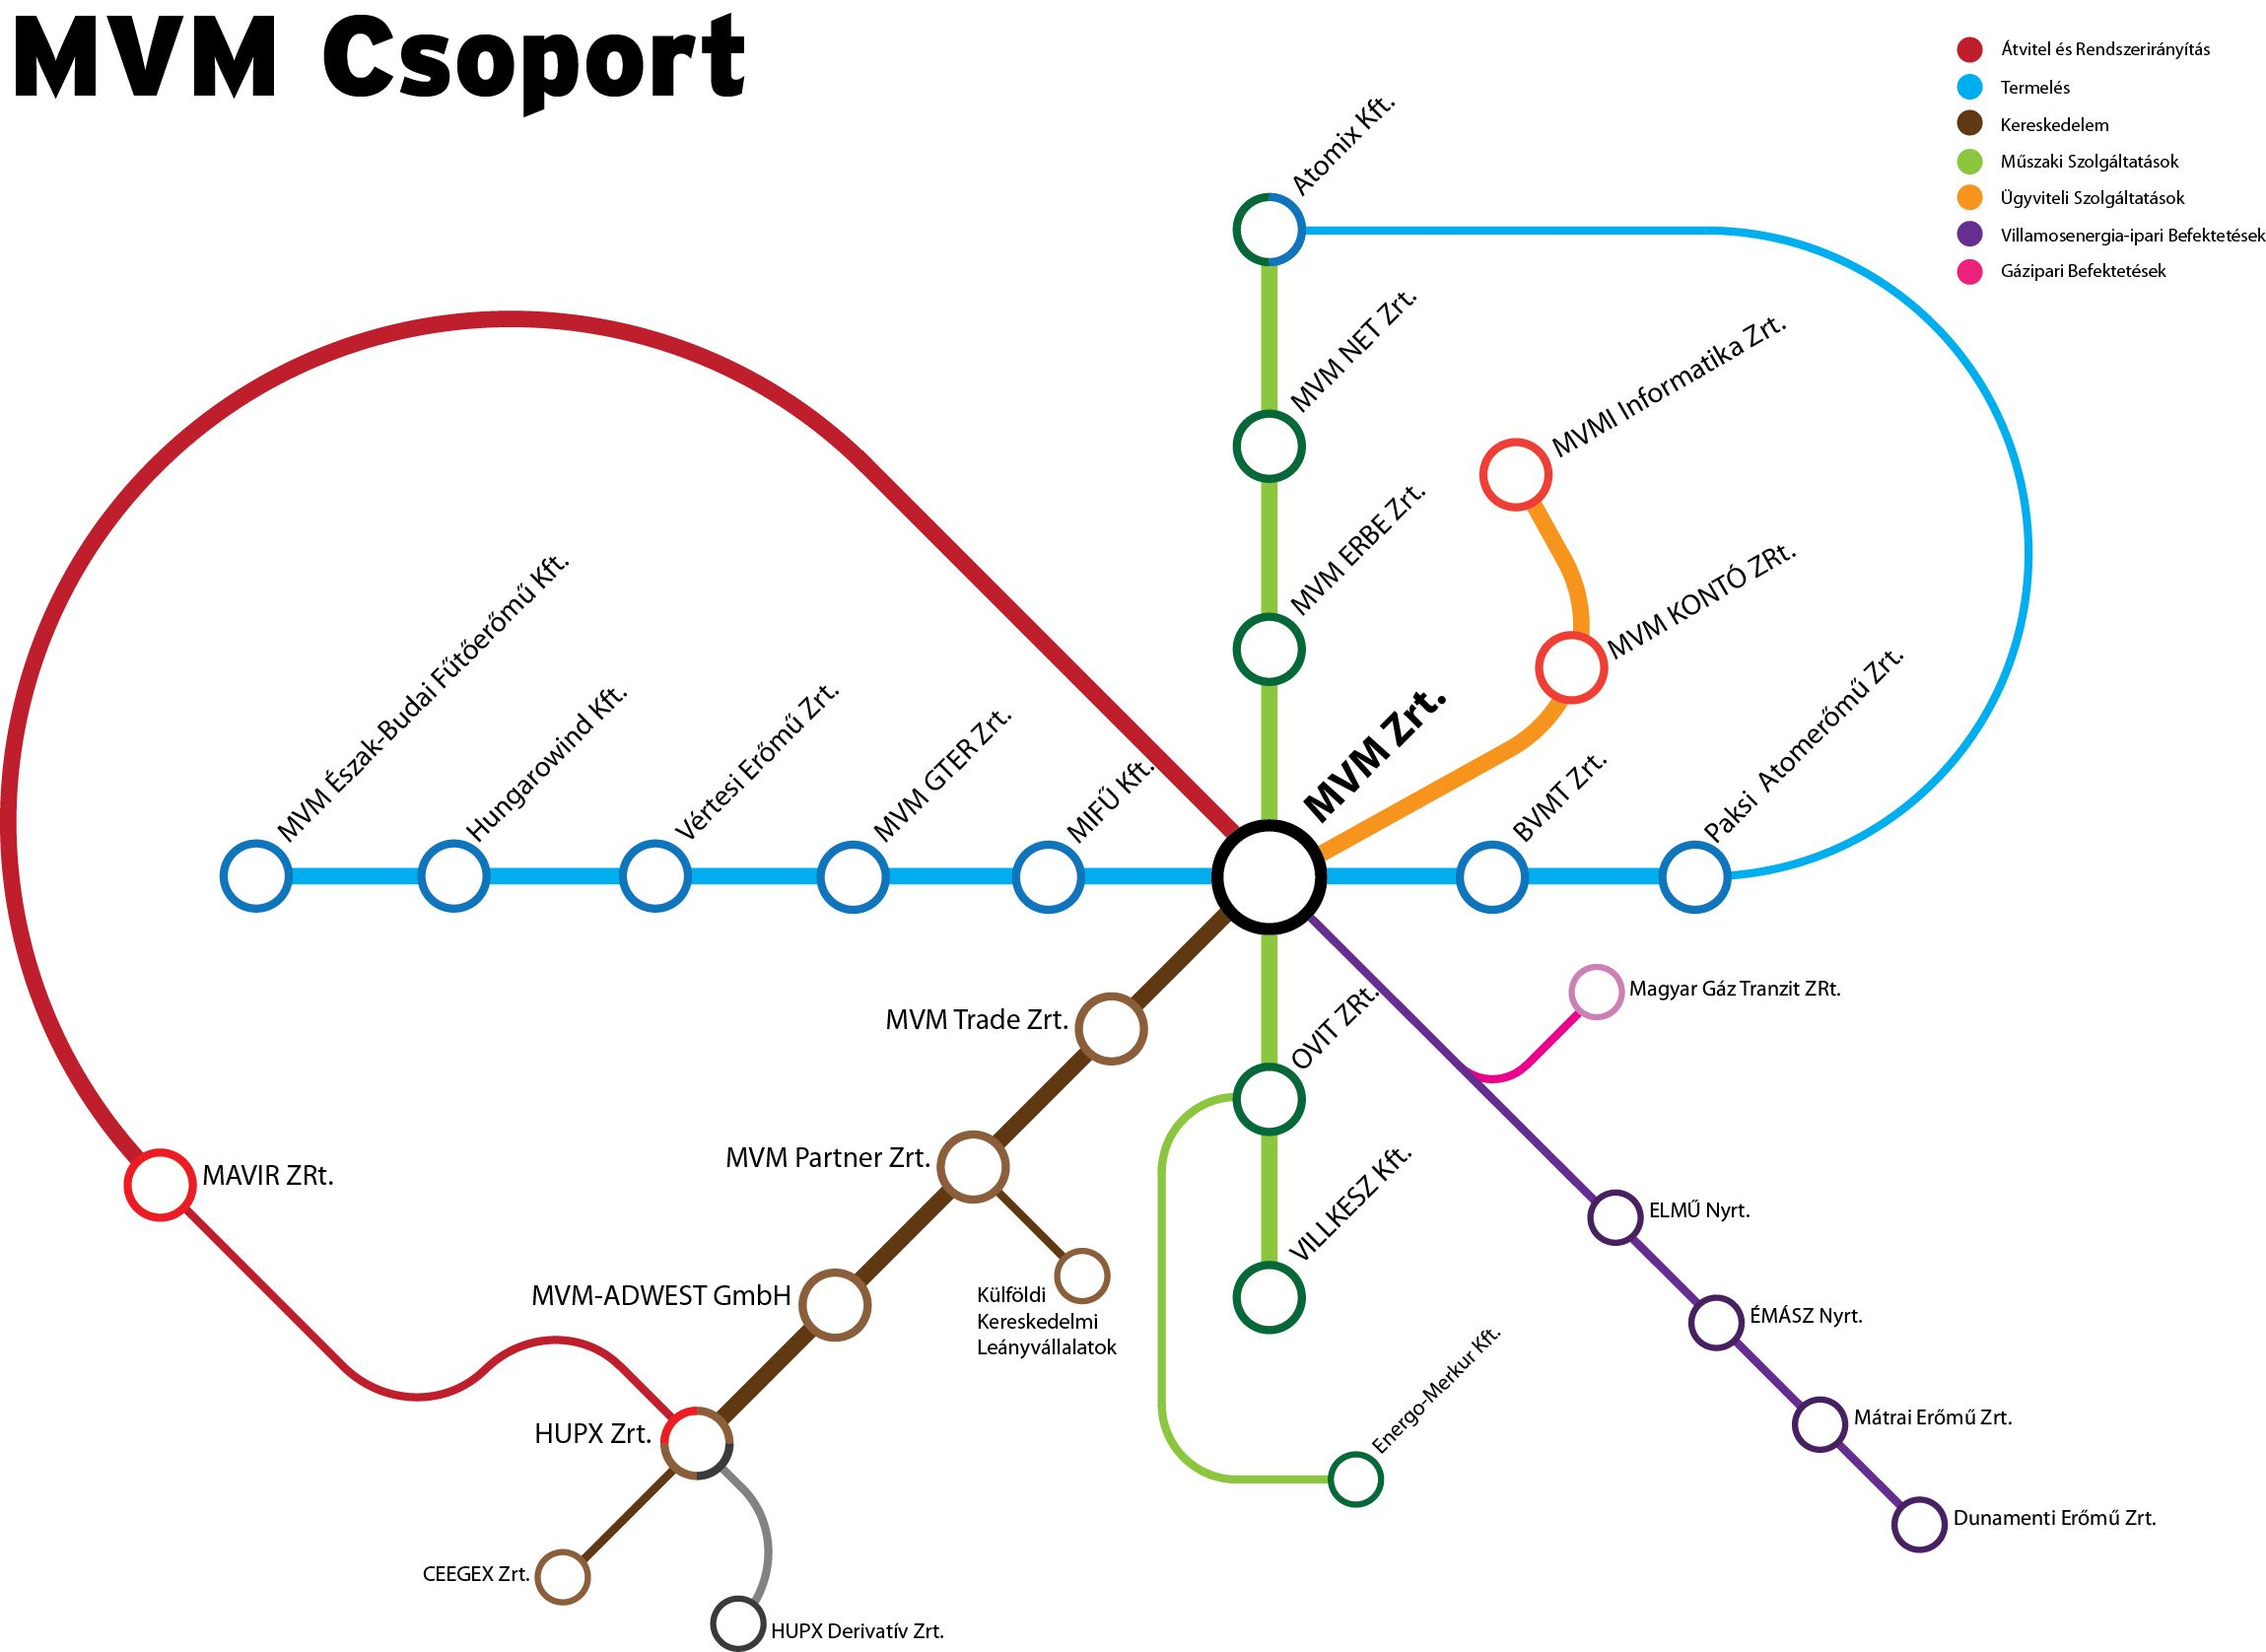 Creative Subway Map.Infographics Yes To More Creative Ways To Present Boring Org